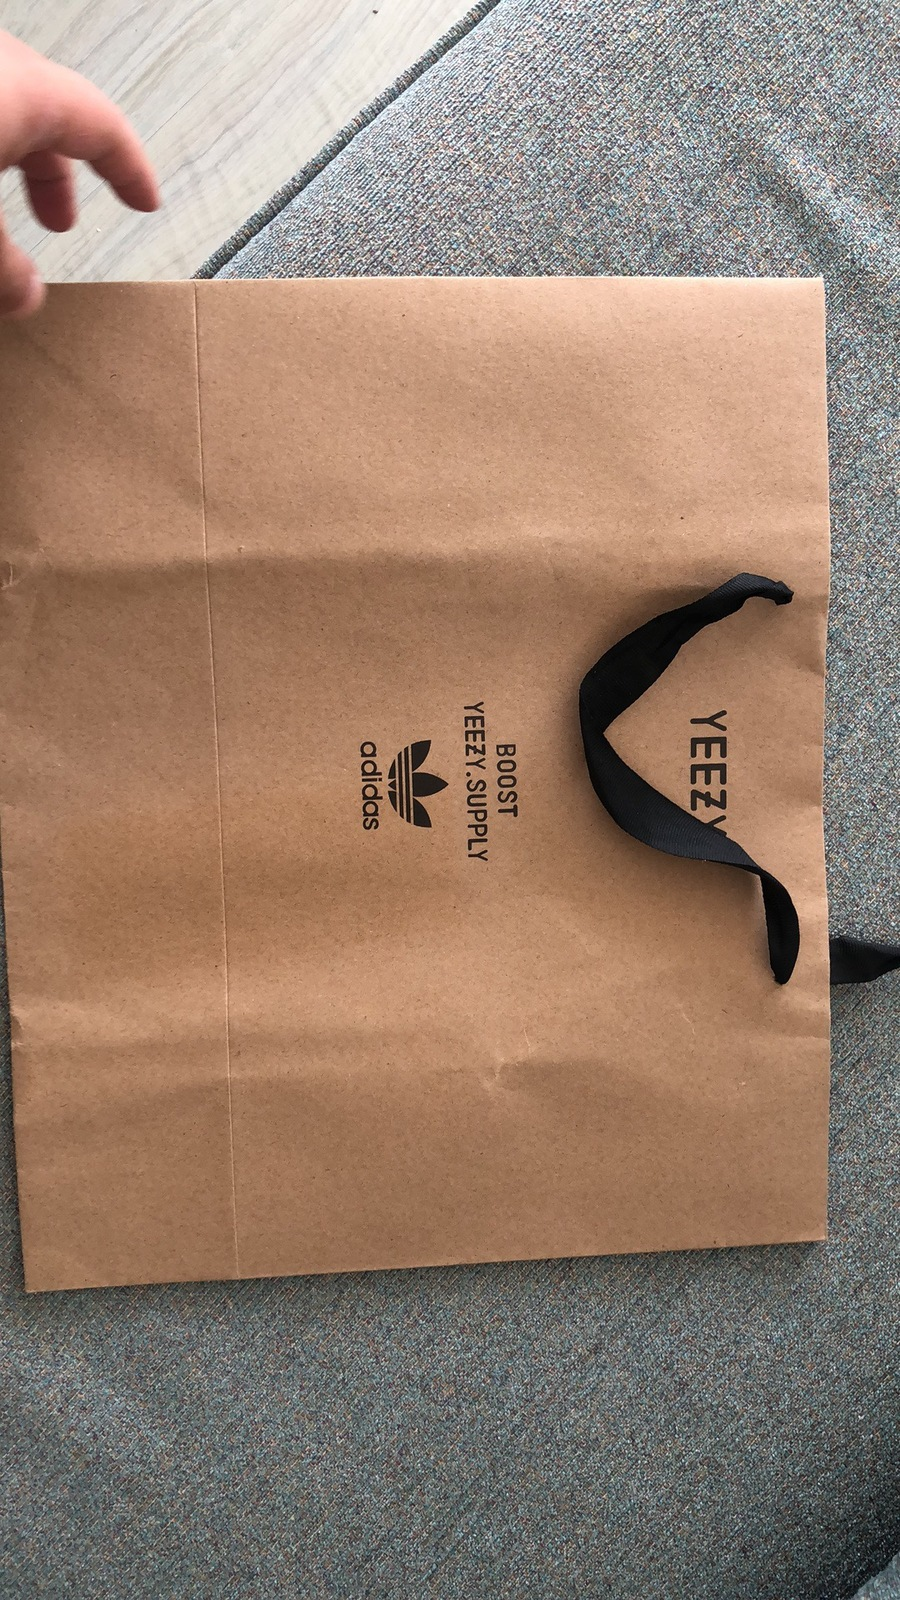 Yeezy Shopping Bag #424453 replica